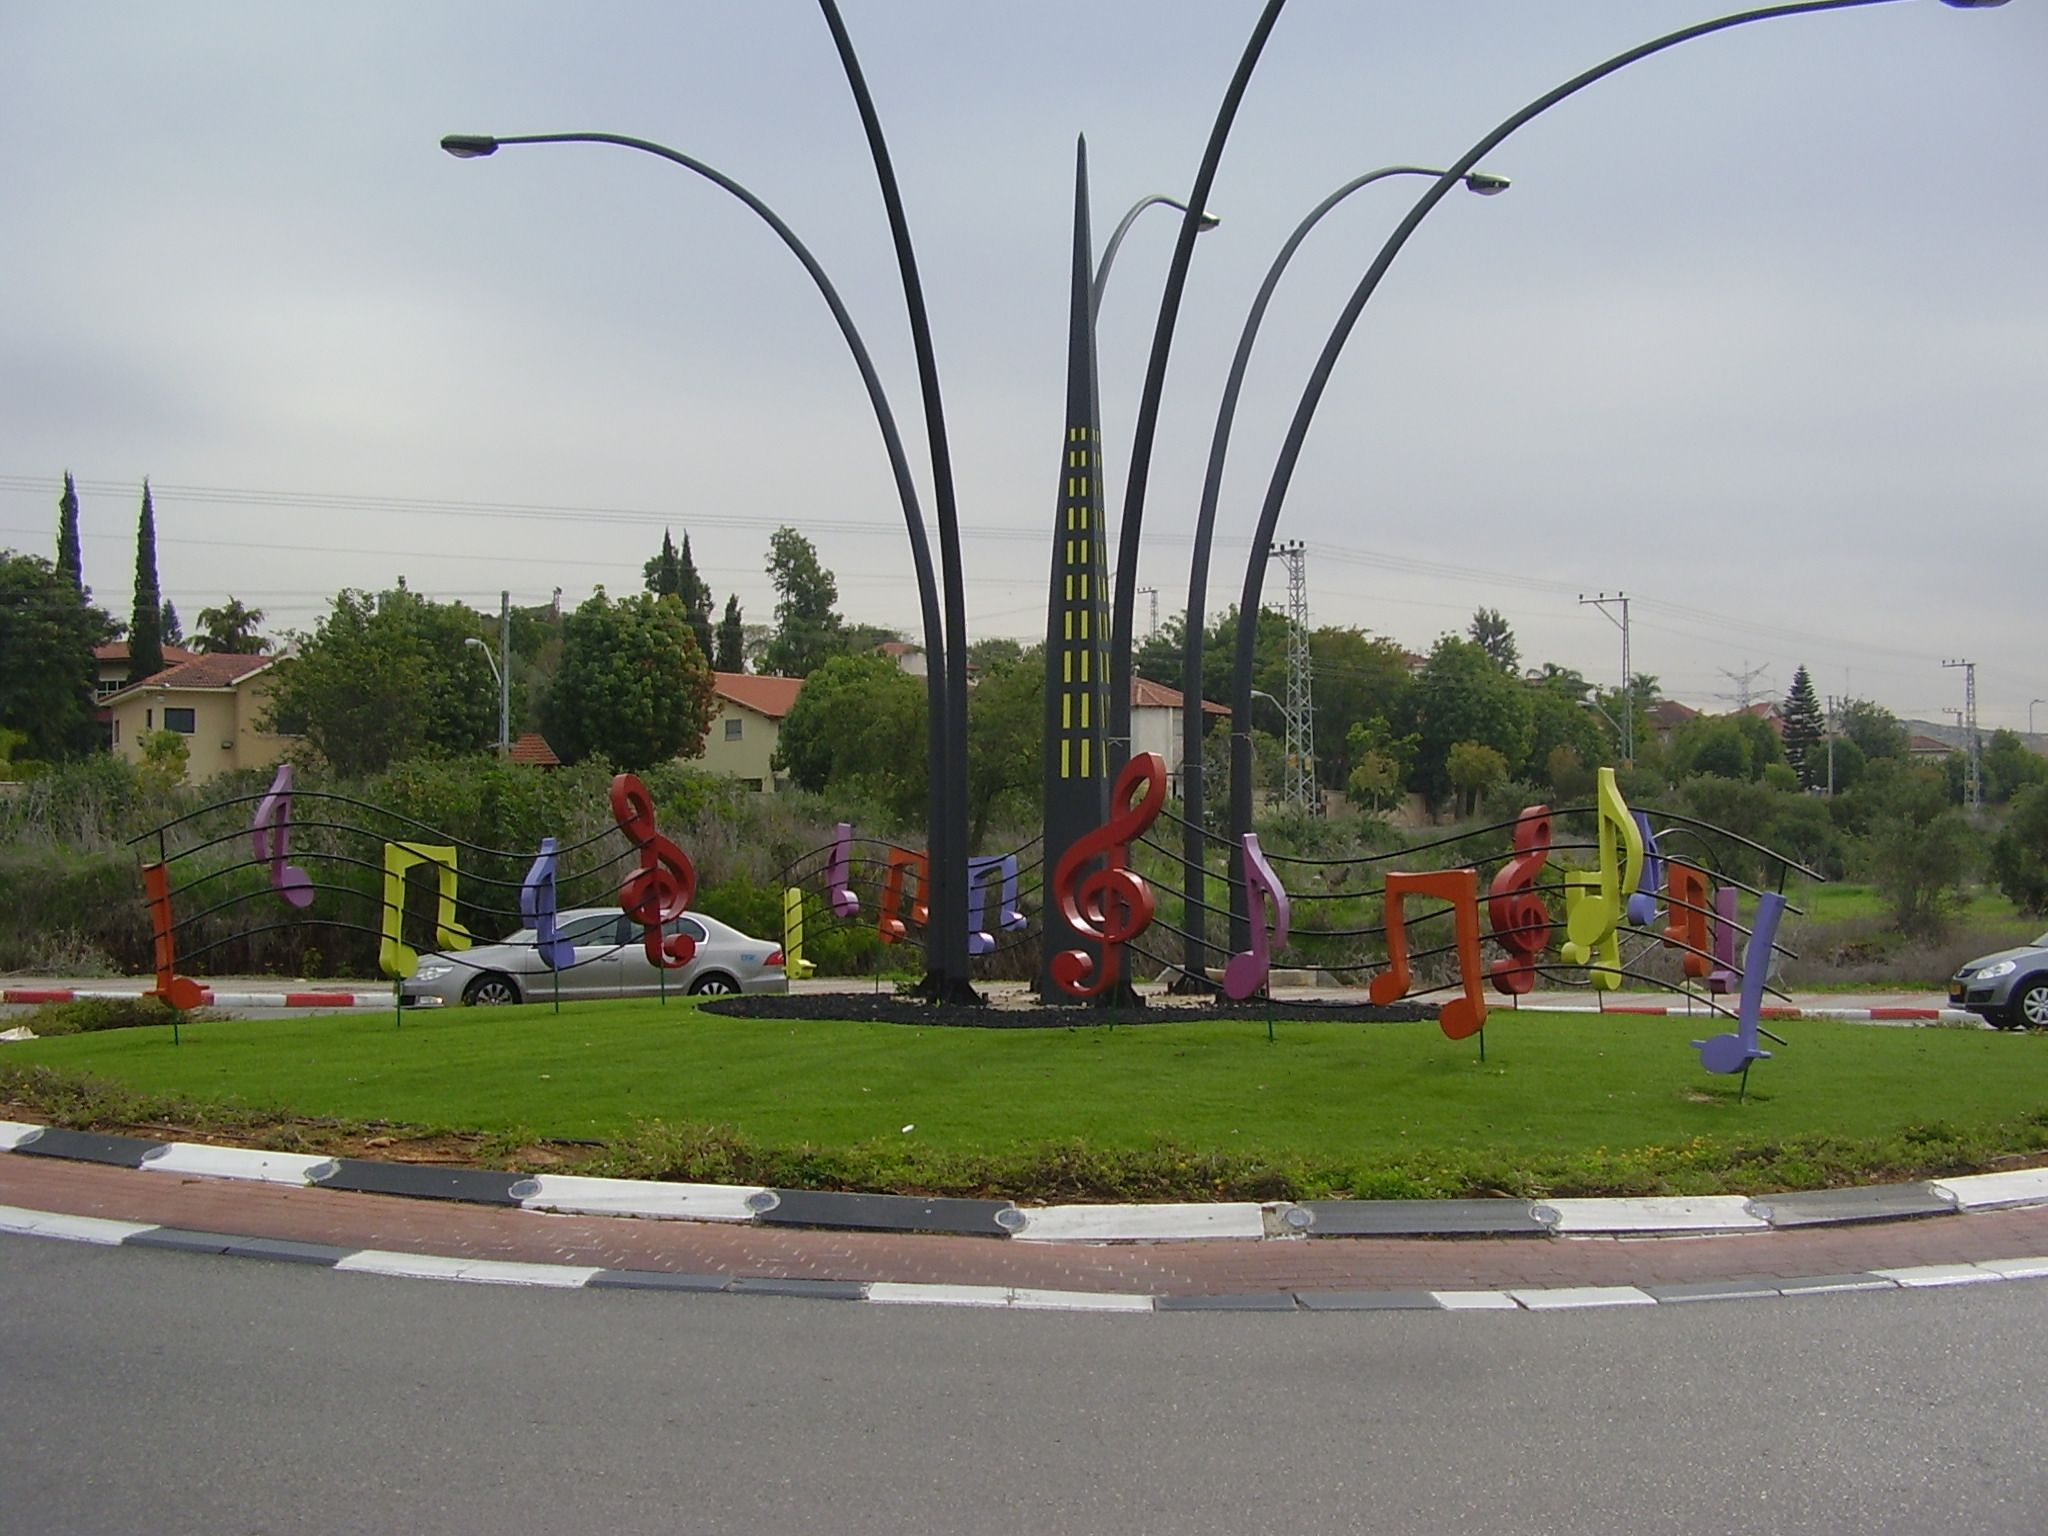 http://upload.wikimedia.org/wikipedia/commons/6/6a/PikiWiki_Israel_16357_Rosh_Haayin_music_town_-_Notes_Square.JPG